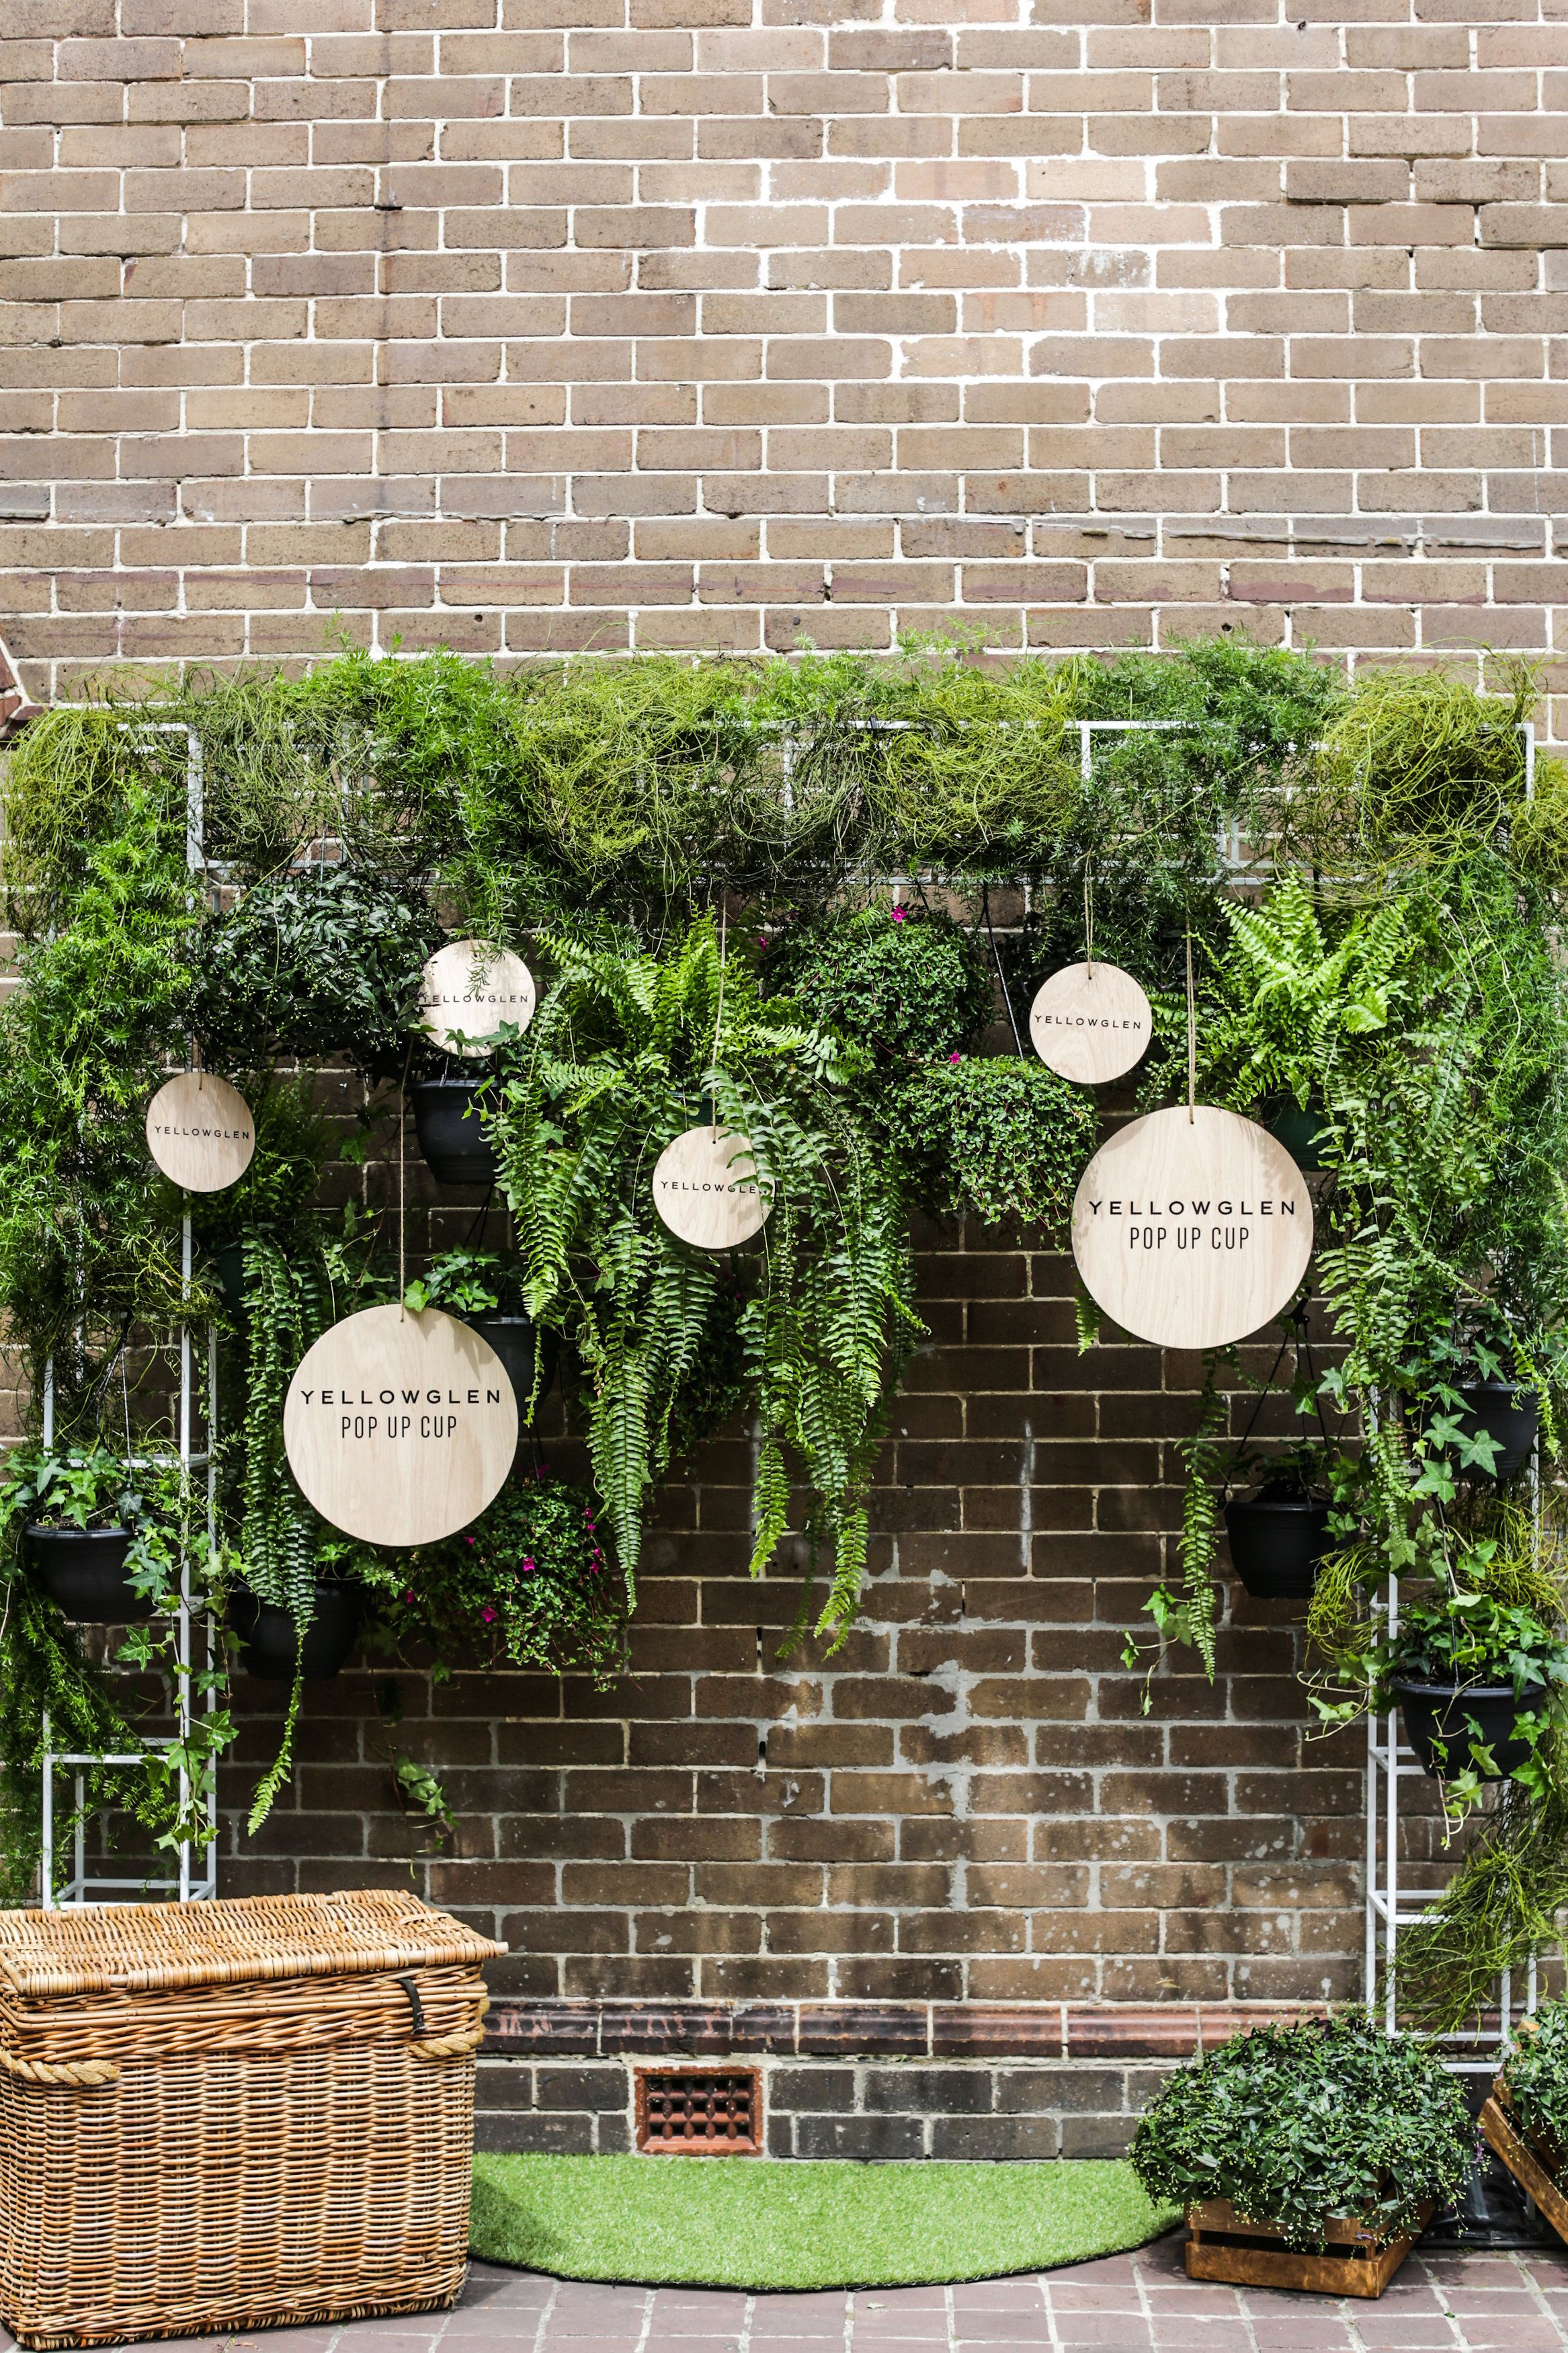 Yellowglen Pop Up Cup in Sydney - Georgeous Occasions ...